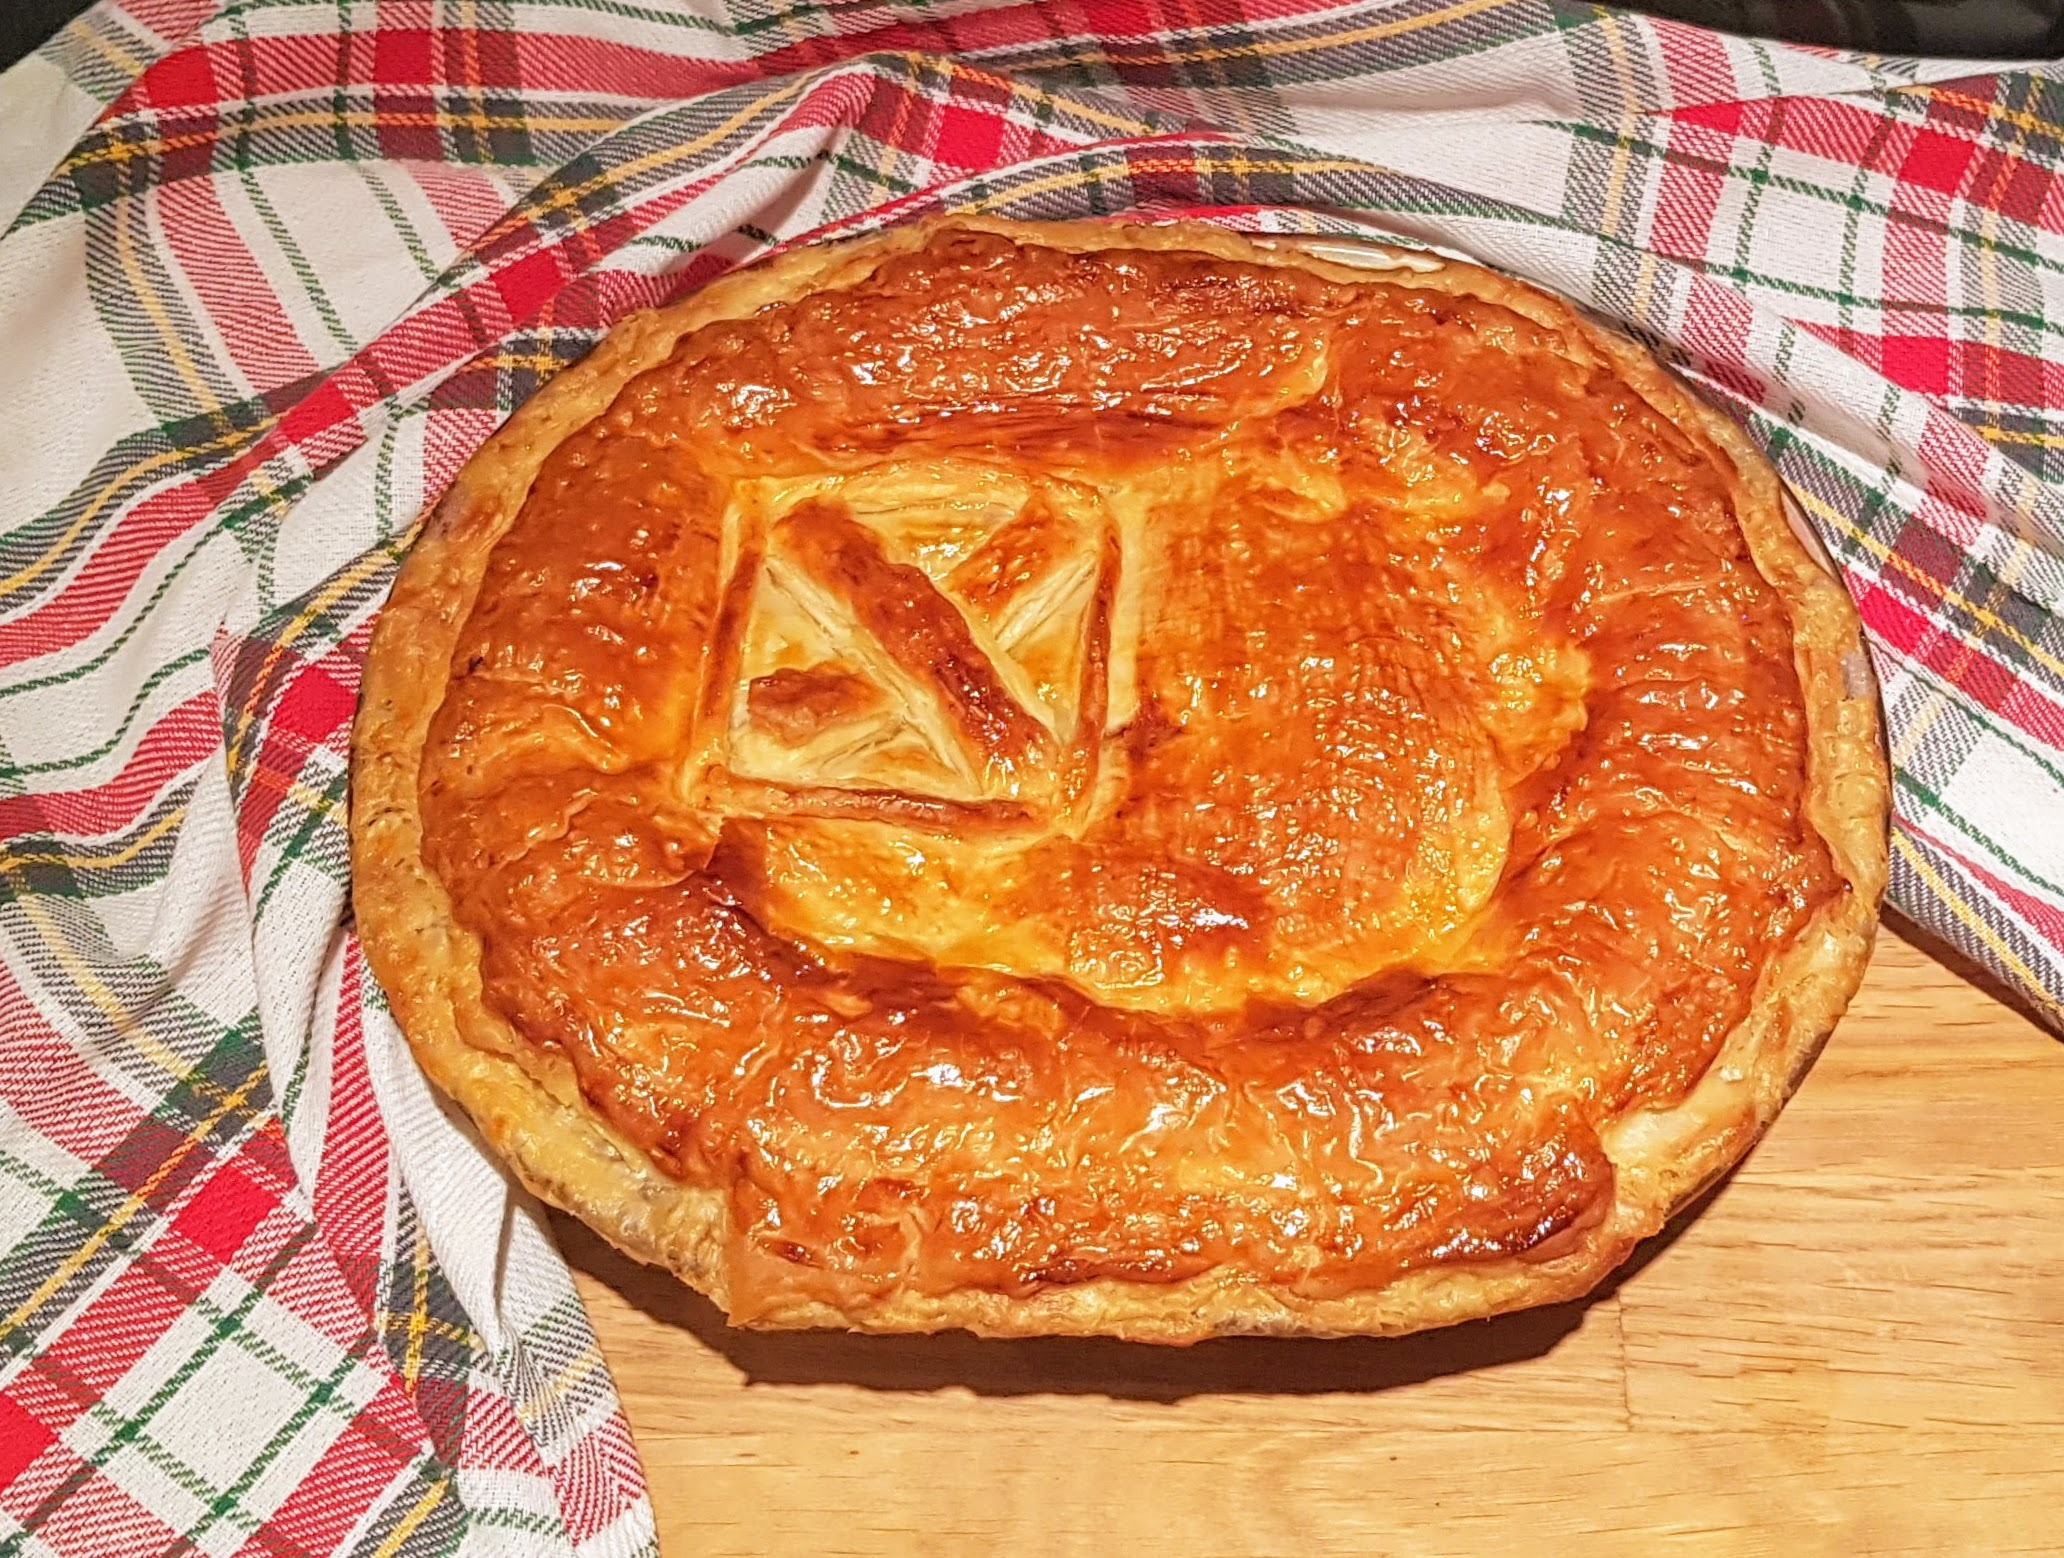 SCOTTISH NEW YEARS DAY STEAK PIE | THE WEE CALEDONIAN COOK